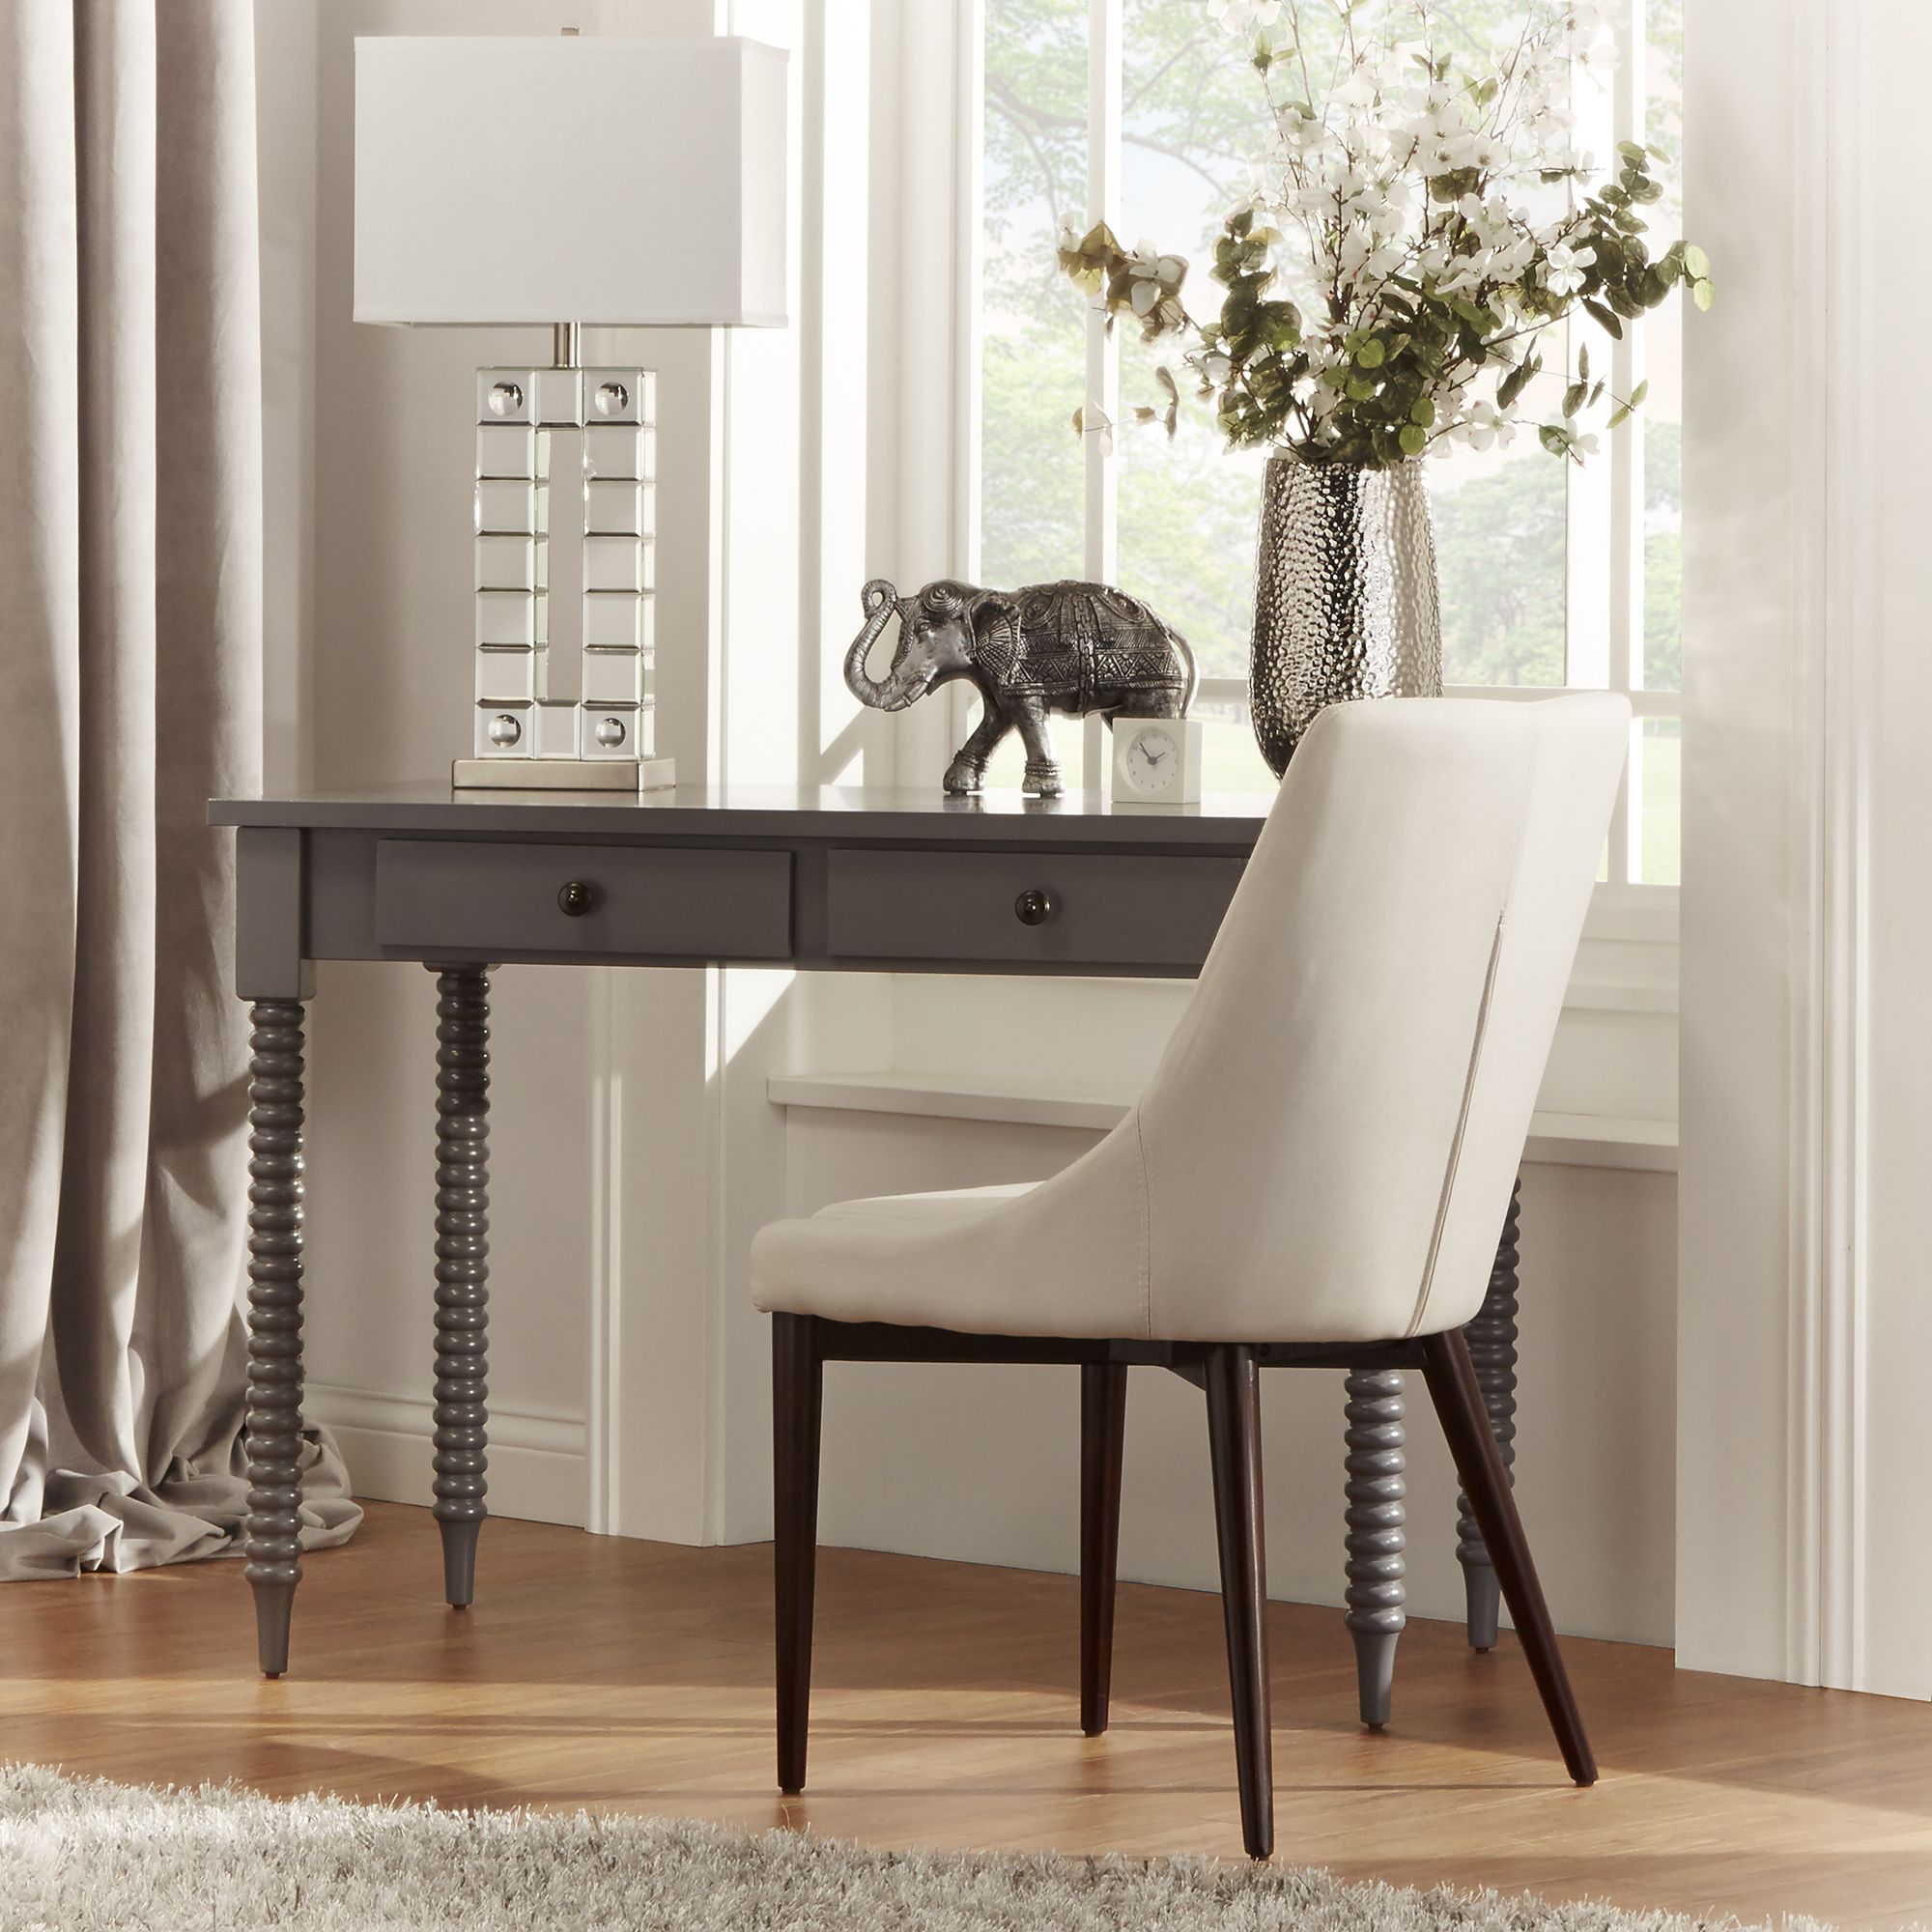 Inspire Q design secret: Neutrals can lead the eye to other views, such as